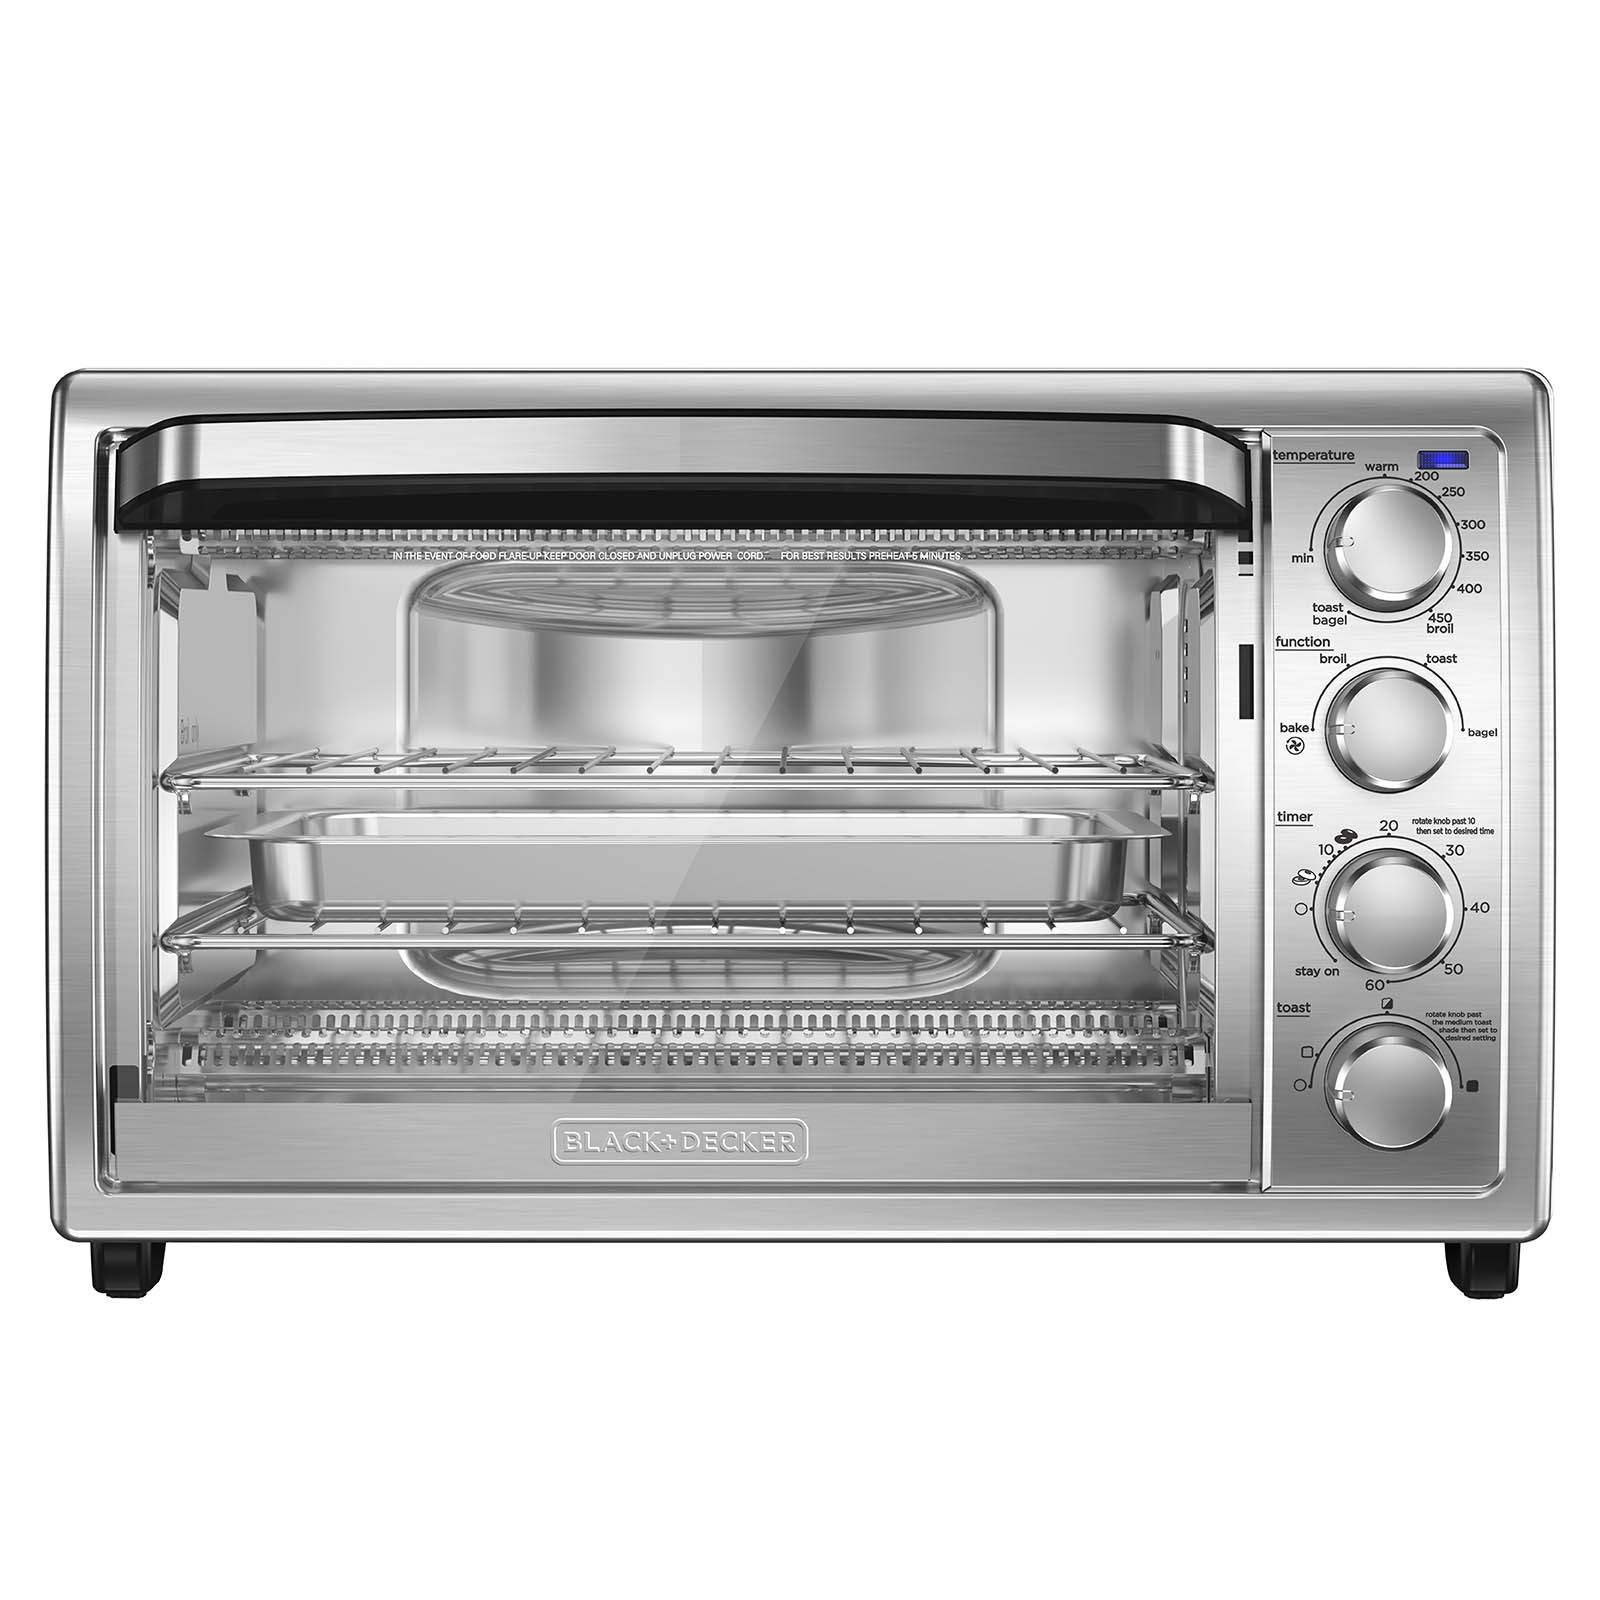 Black And Decker Convection Toaster Oven Bed Bath And Beyond